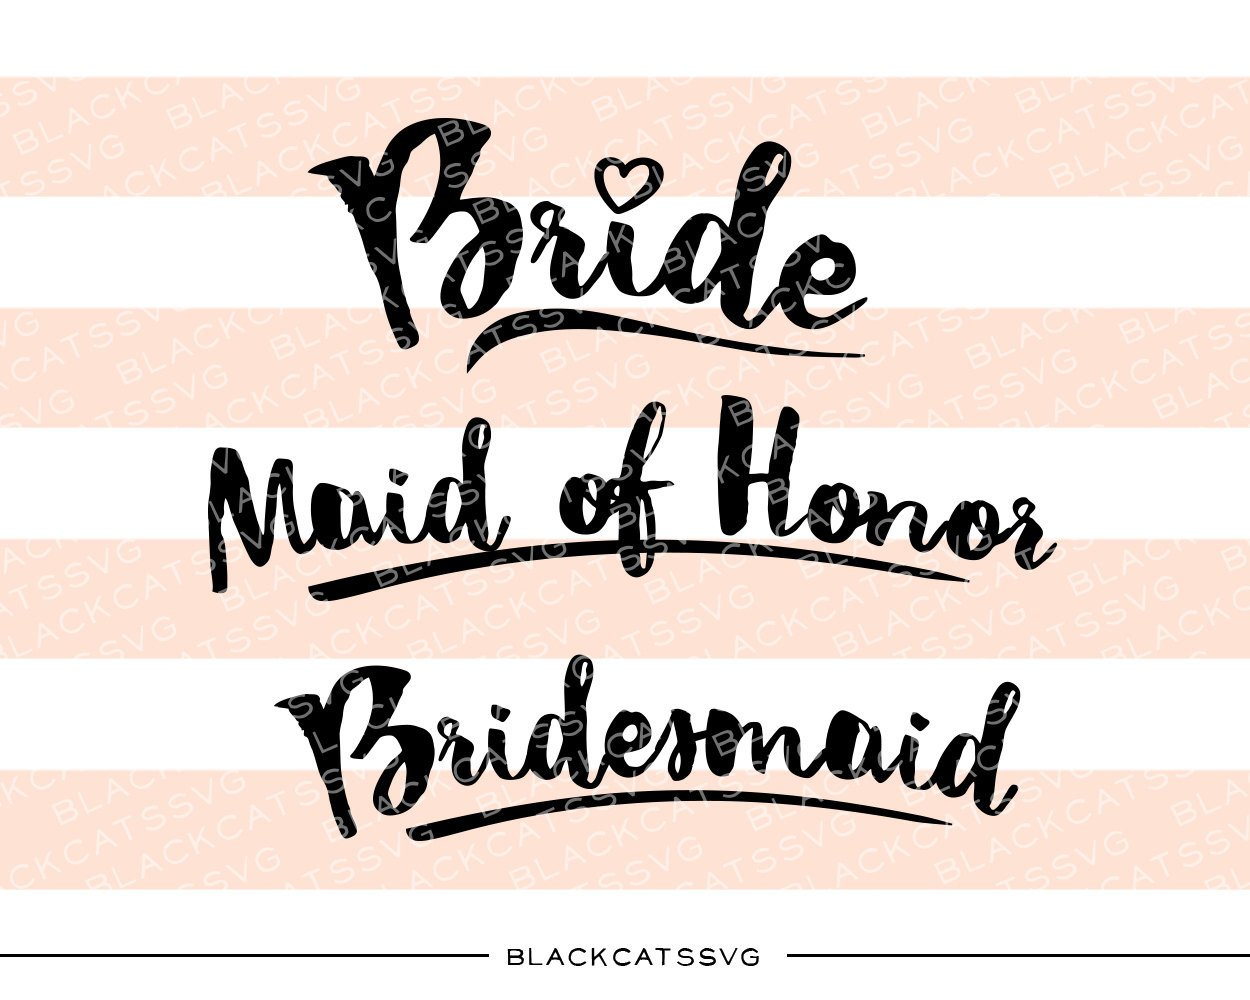 Bride Maid of Honor Bridesmaid SVG file Cutting File Clipart in Svg, Eps,  Dxf, Png for Cricut & Silhouette.